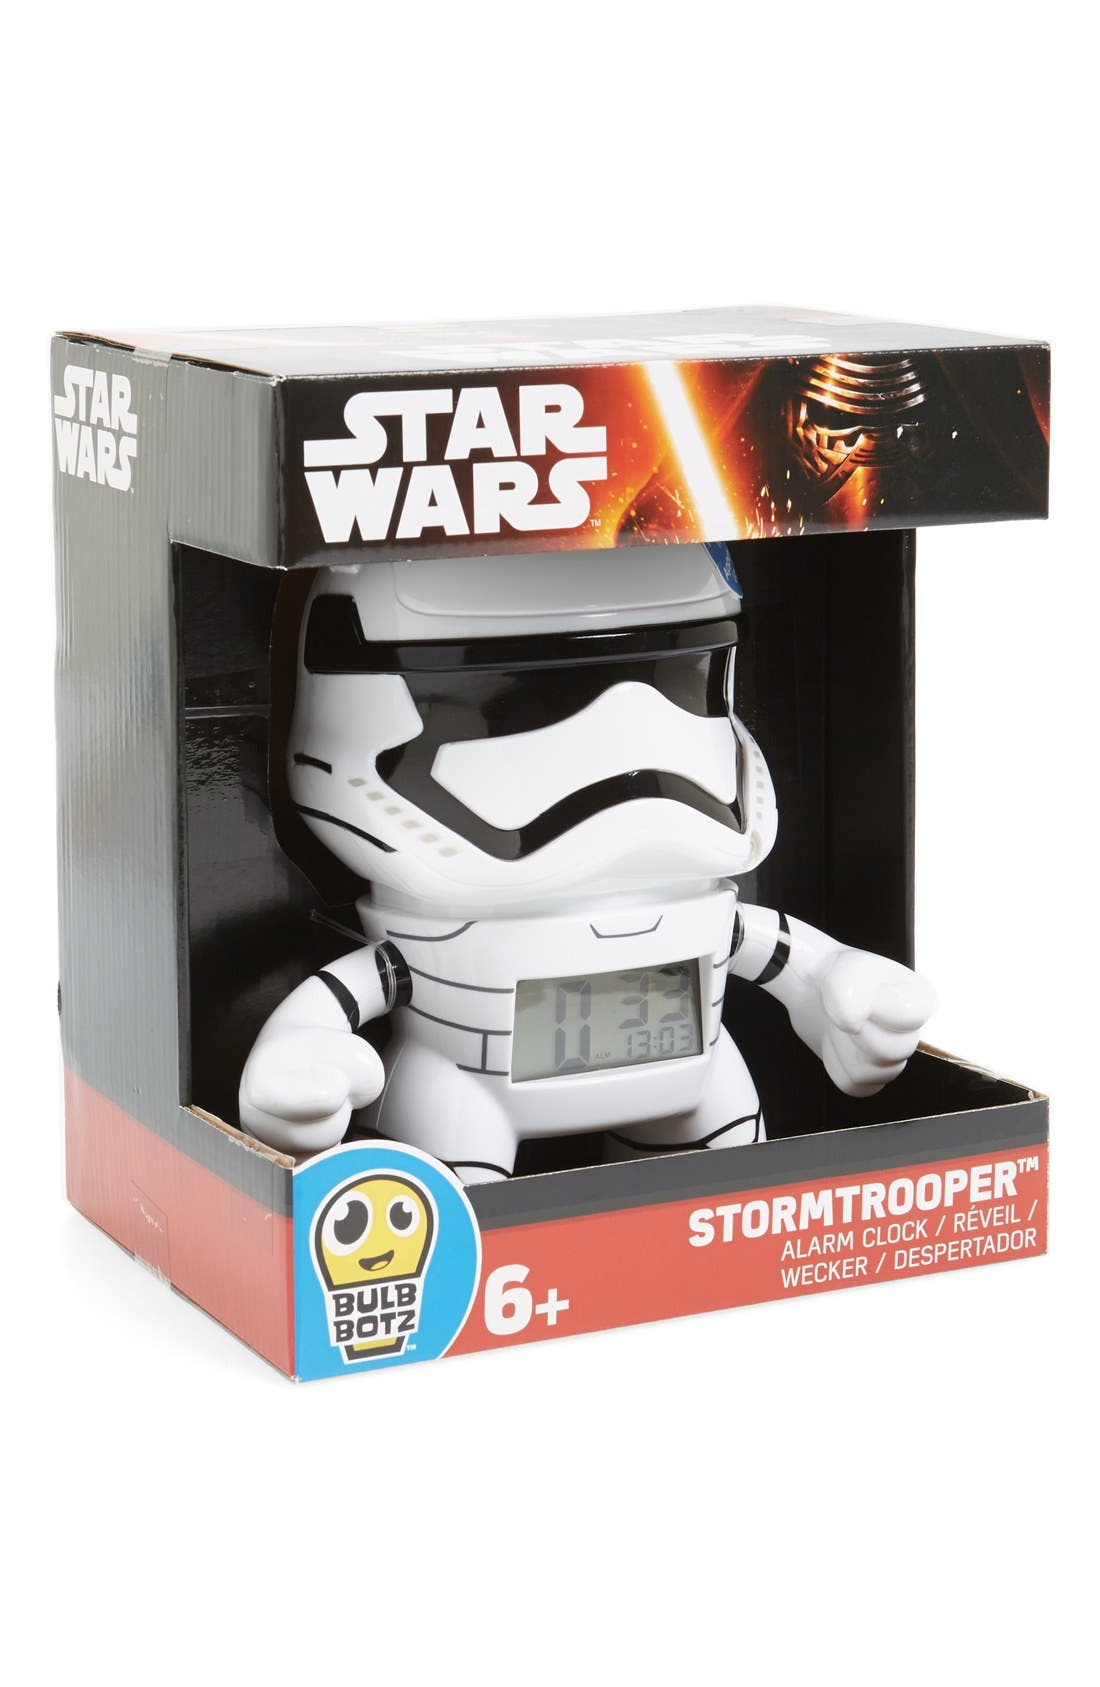 BULB BOTZ 'Star Wars™ - Stormtrooper' Light-Up Alarm